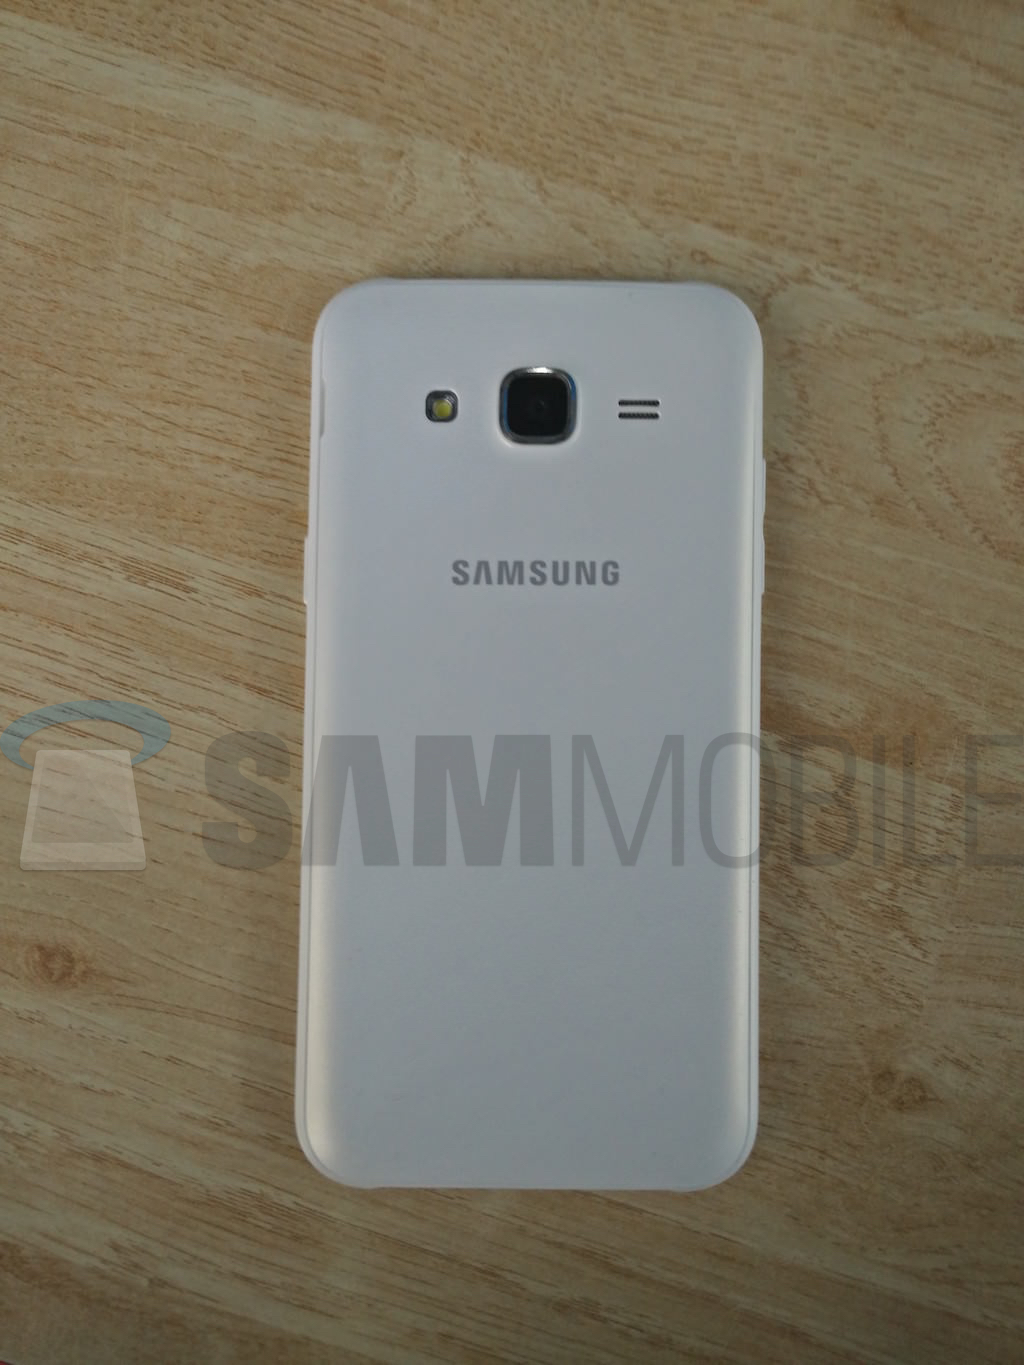 Samsung Galaxy J5 2015 Exclusive Samsung Galaxy J5 Live Images And Specifications